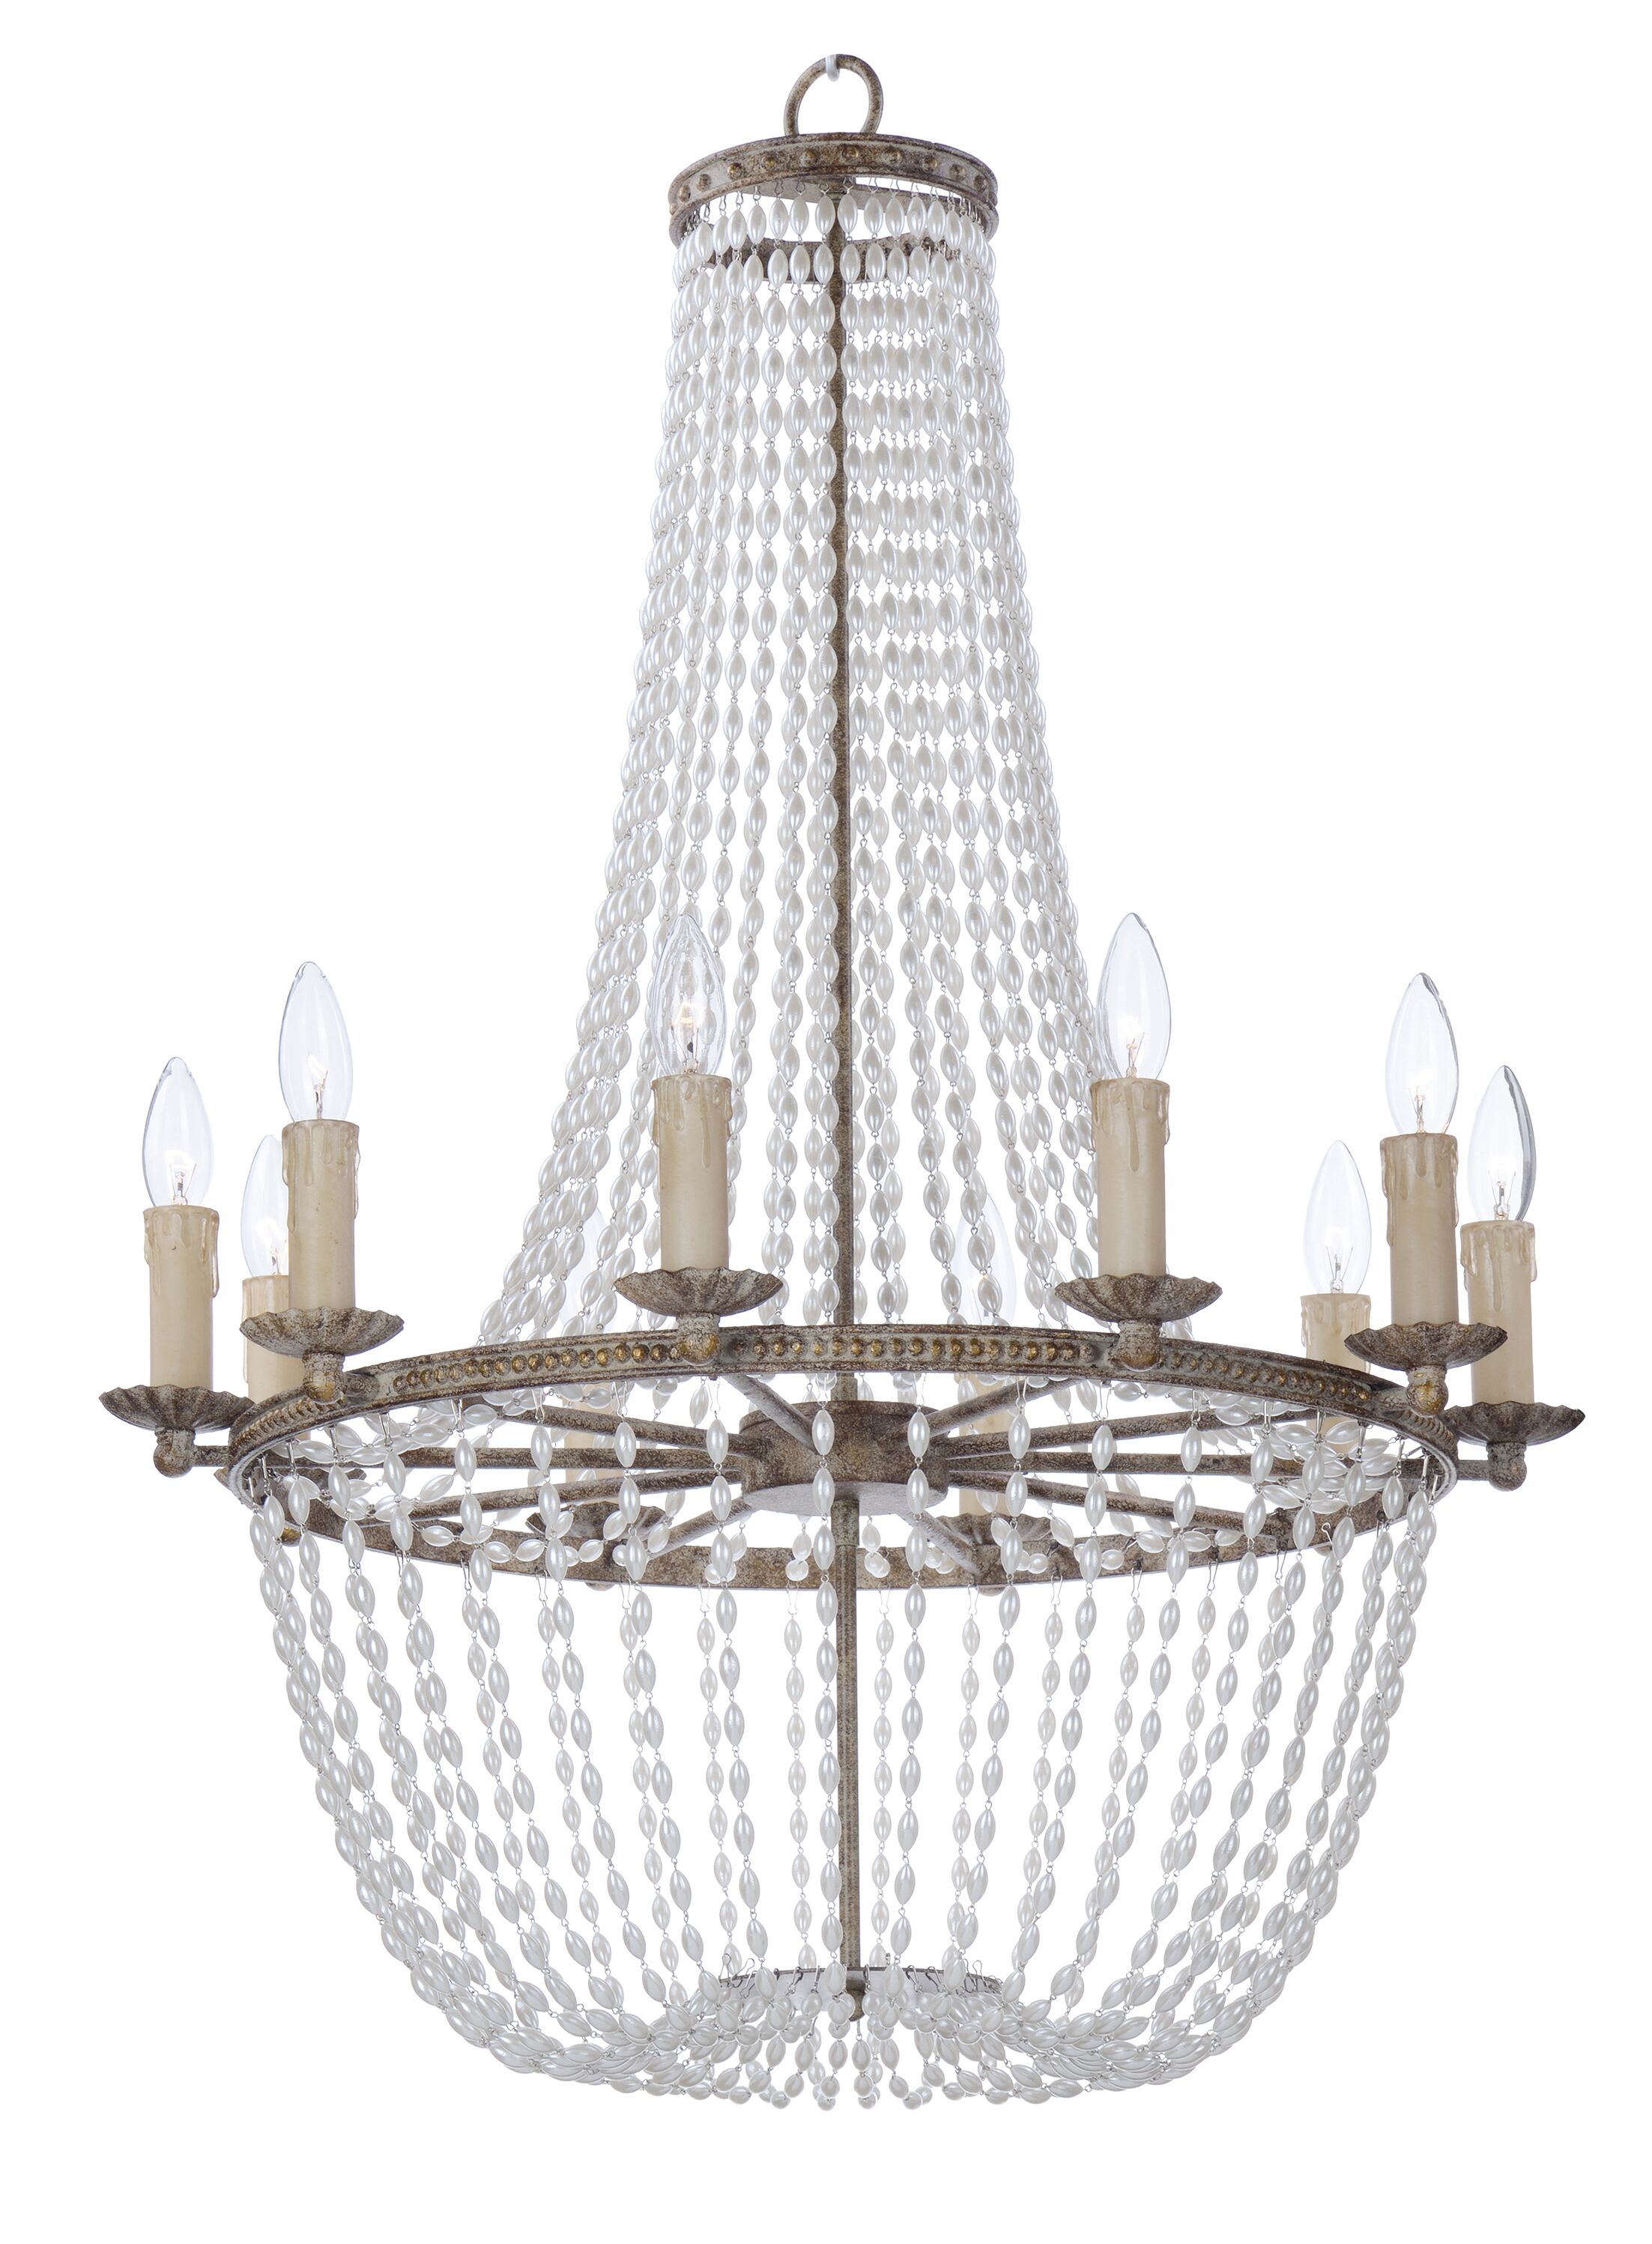 Georgiana 10-Light Empire Chandelier